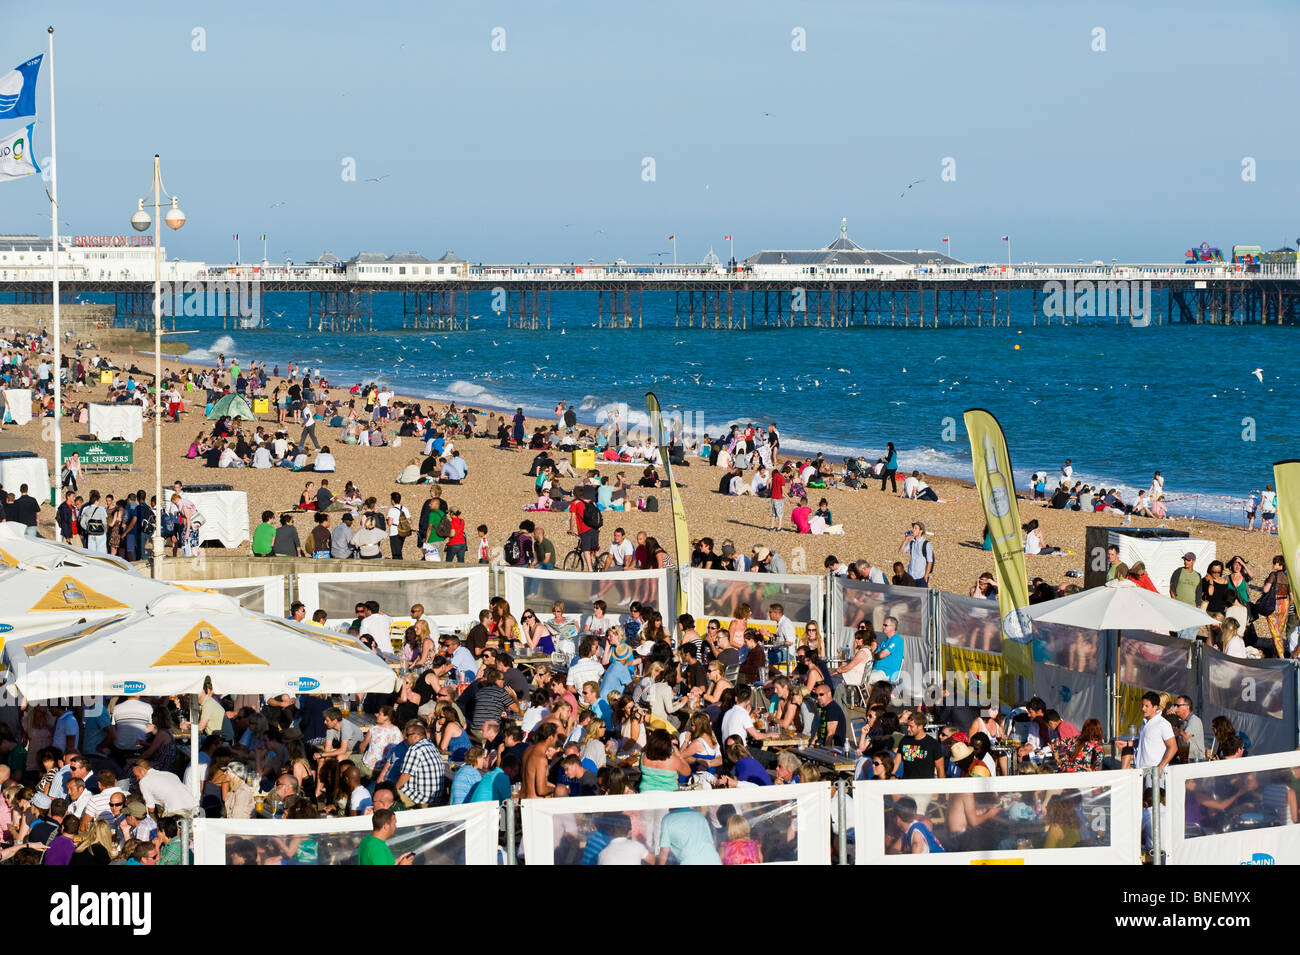 Crowded bars and beach on hot summer day, Brighton, East Sussex, United Kingdom - Stock Image